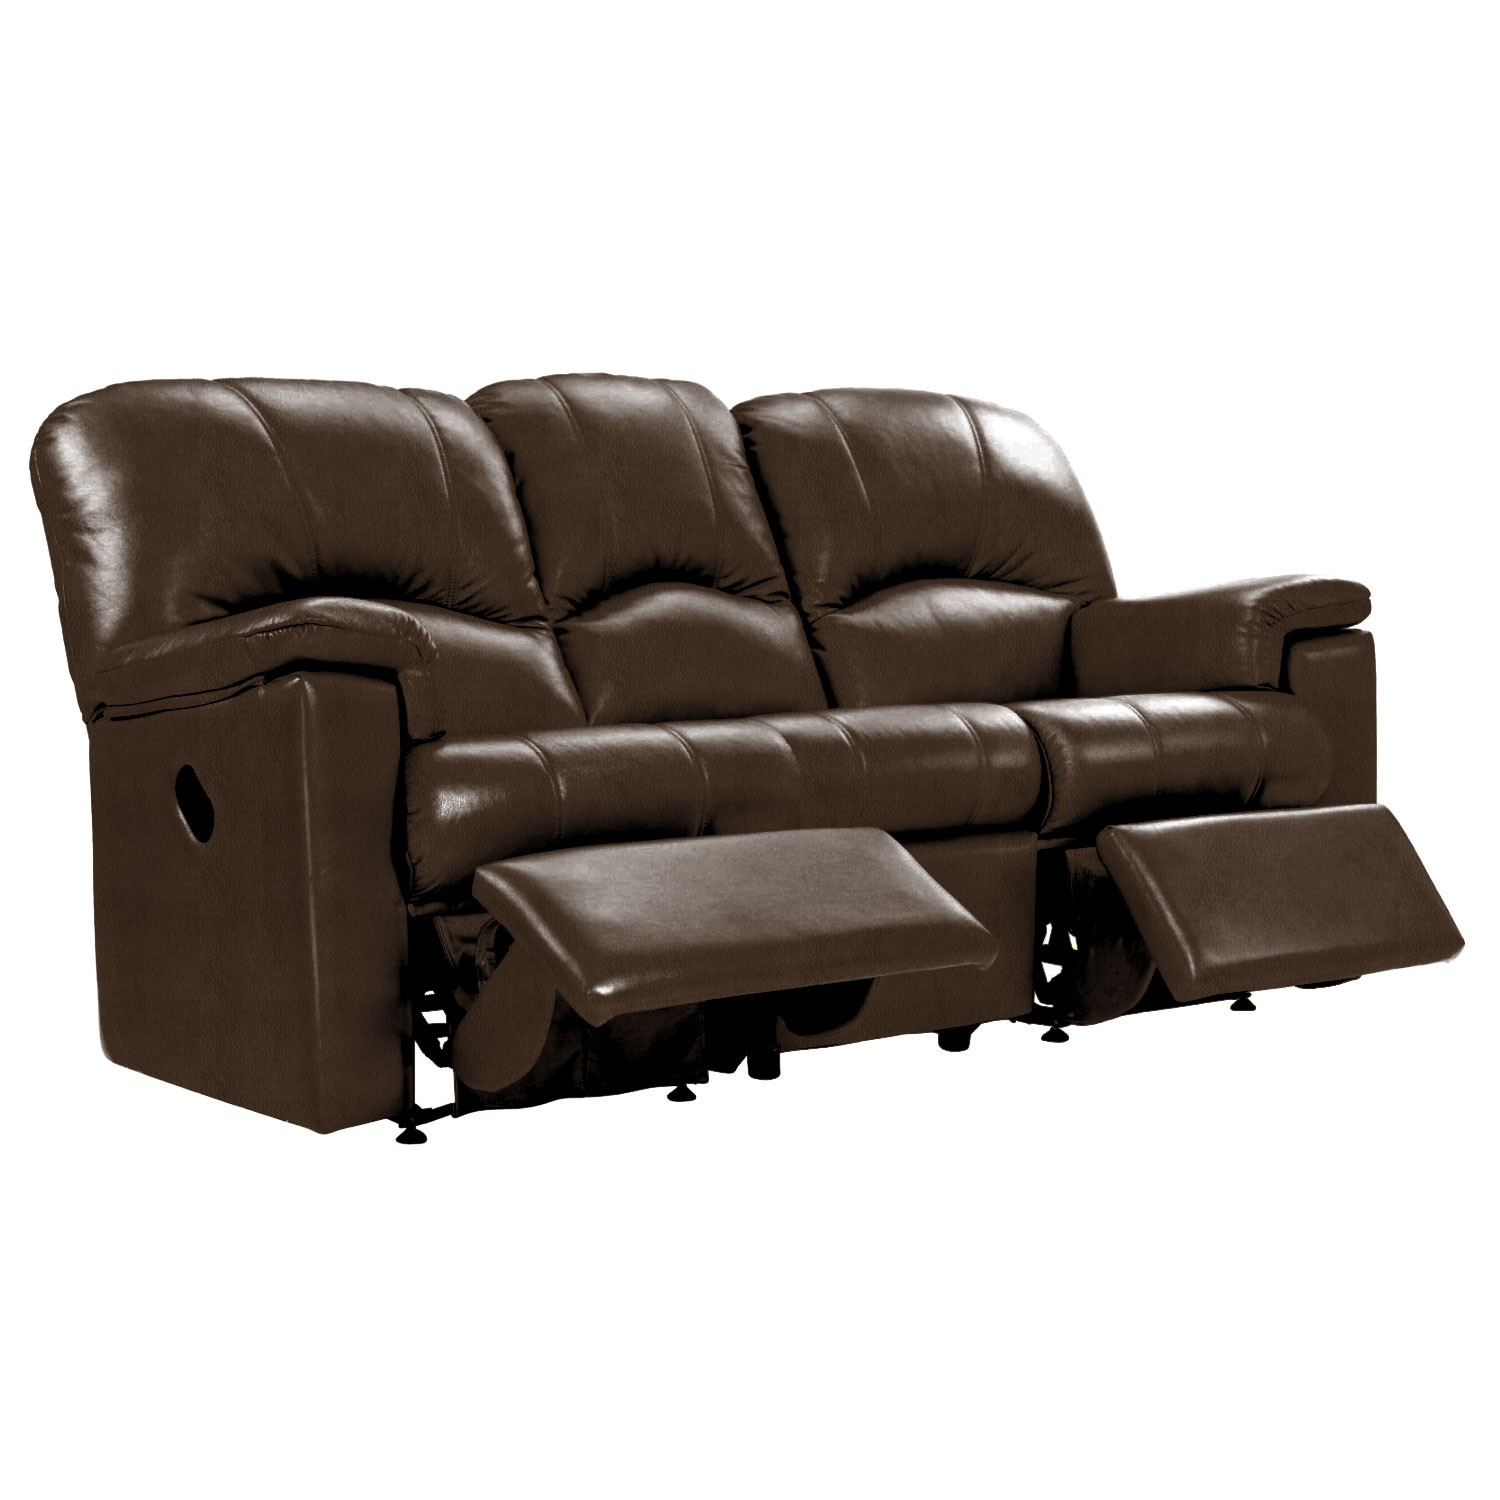 G Plan Chloe 3 Seater Double Power Recliner Leather Sofa L